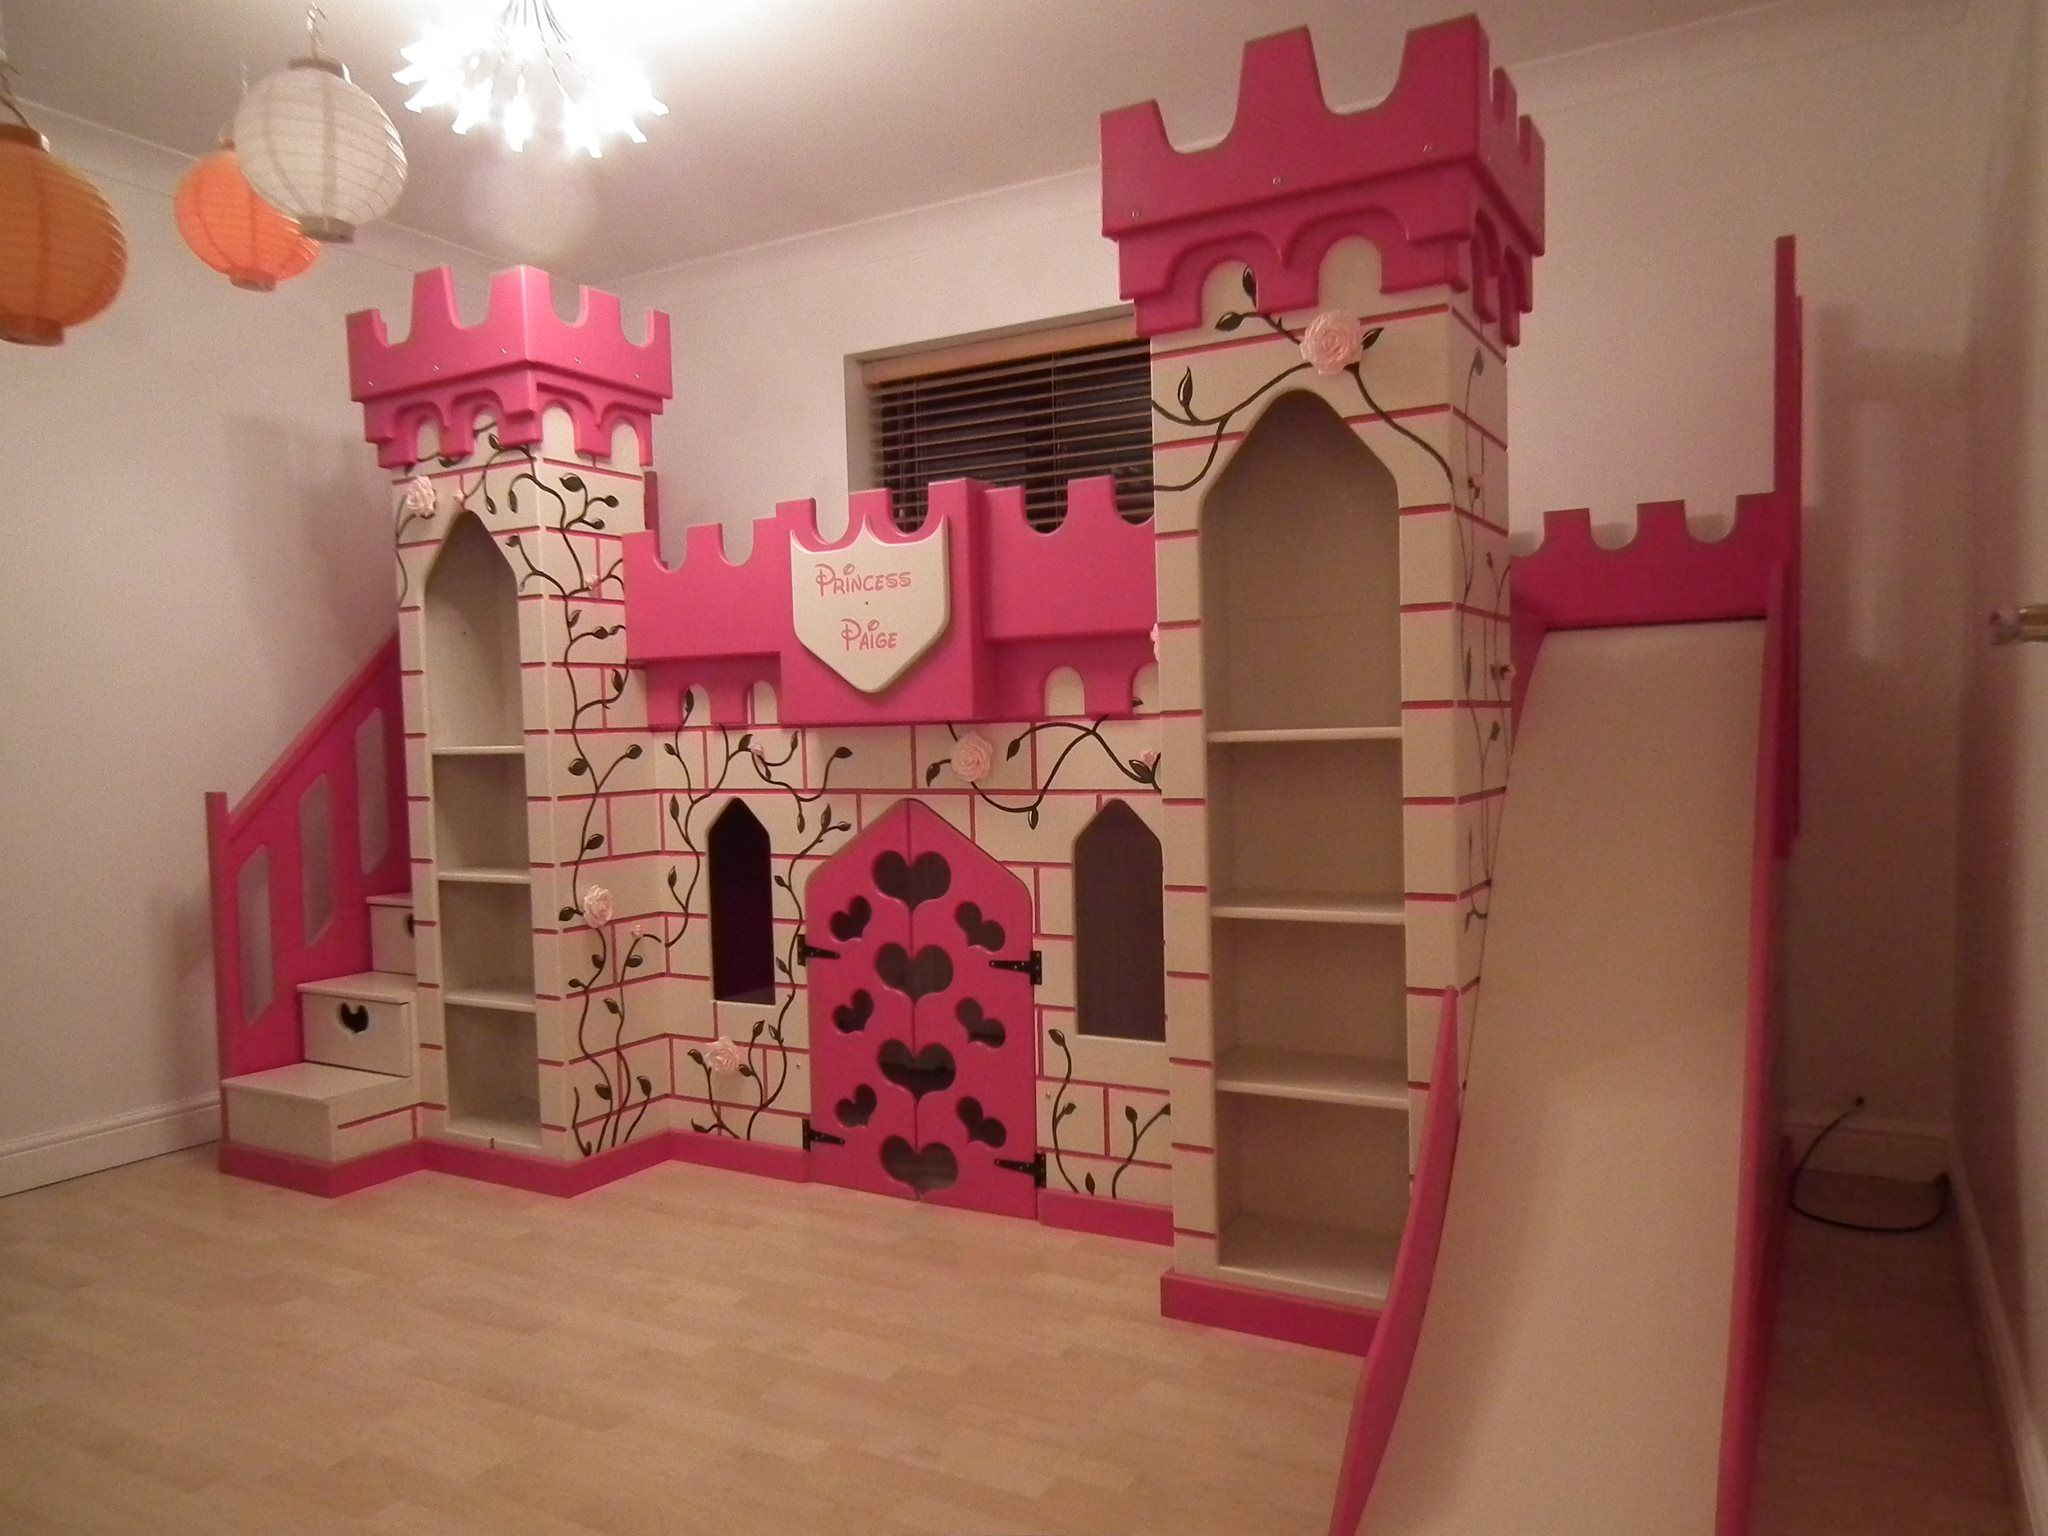 Pretty Pink Princess Castle With Staircase And Slide. This Stunning Bed  With A Bed On The Top And Play Den On The Bottom Is A Truly Magical Bed To  Inspire ...